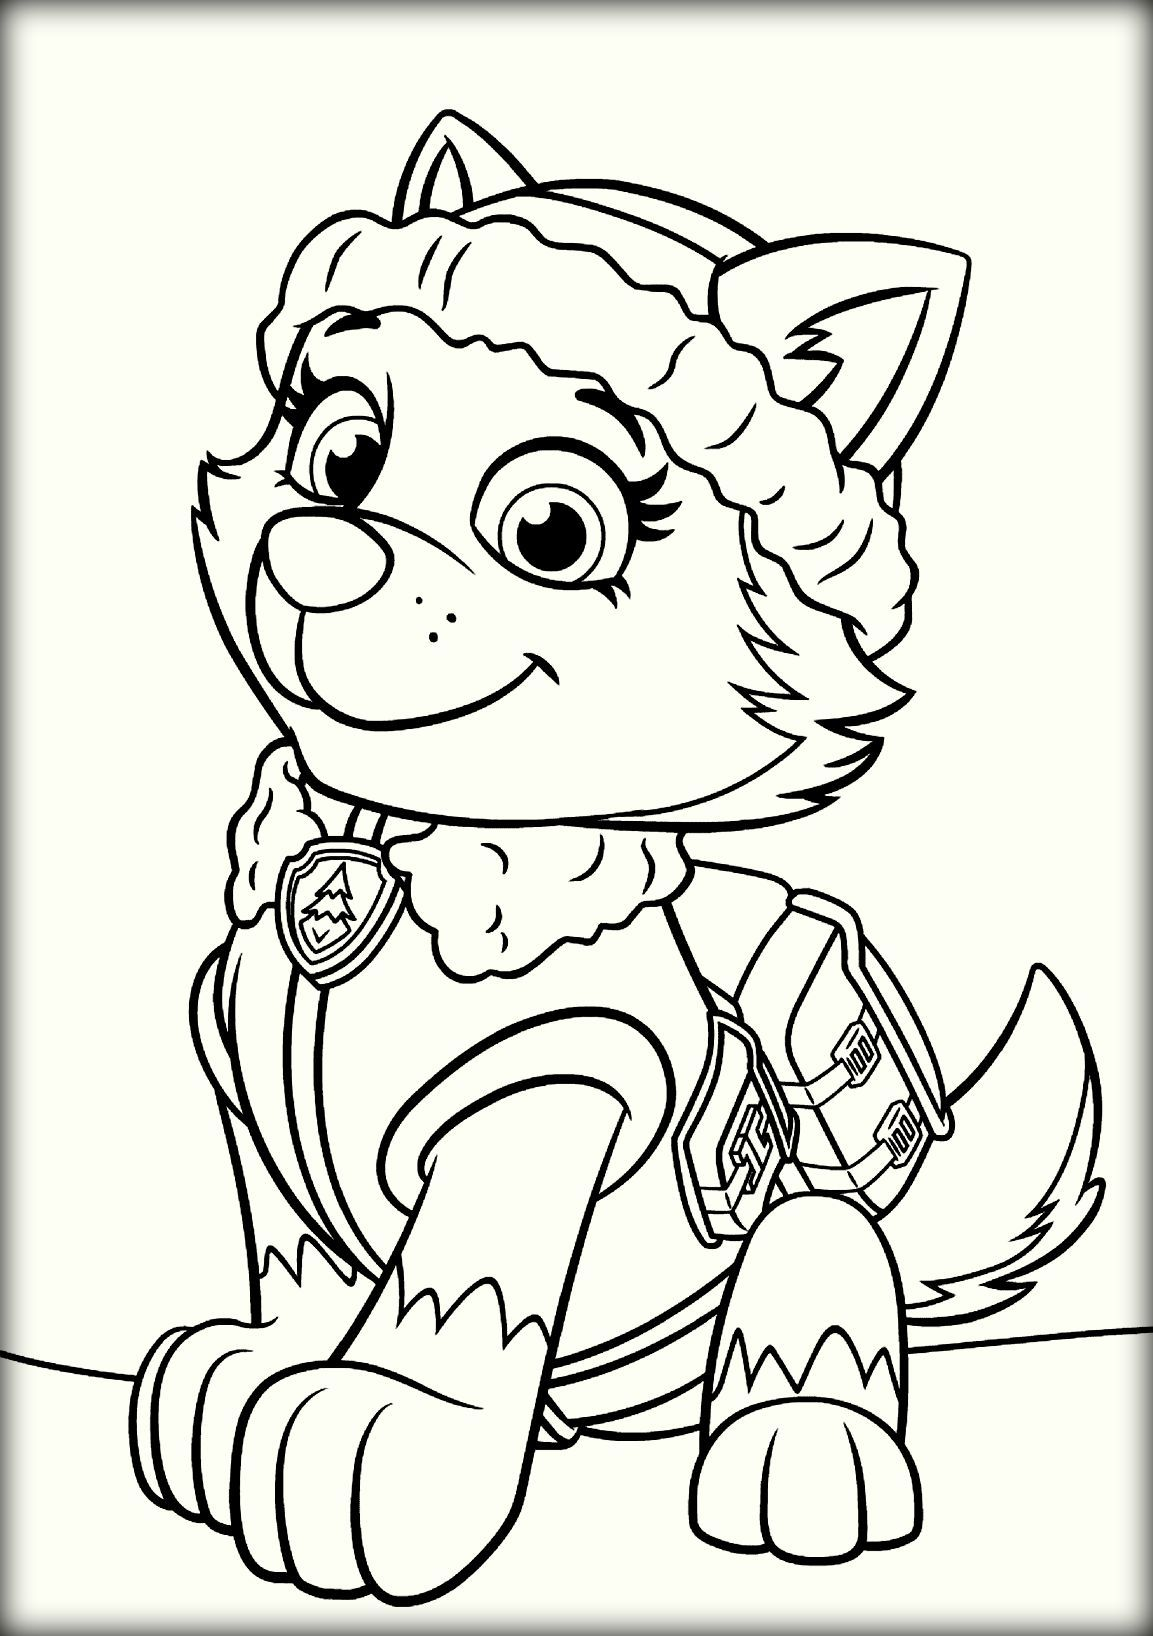 Paw Patrol Everest Coloring Pages Paw Patrol Coloring Pages Paw